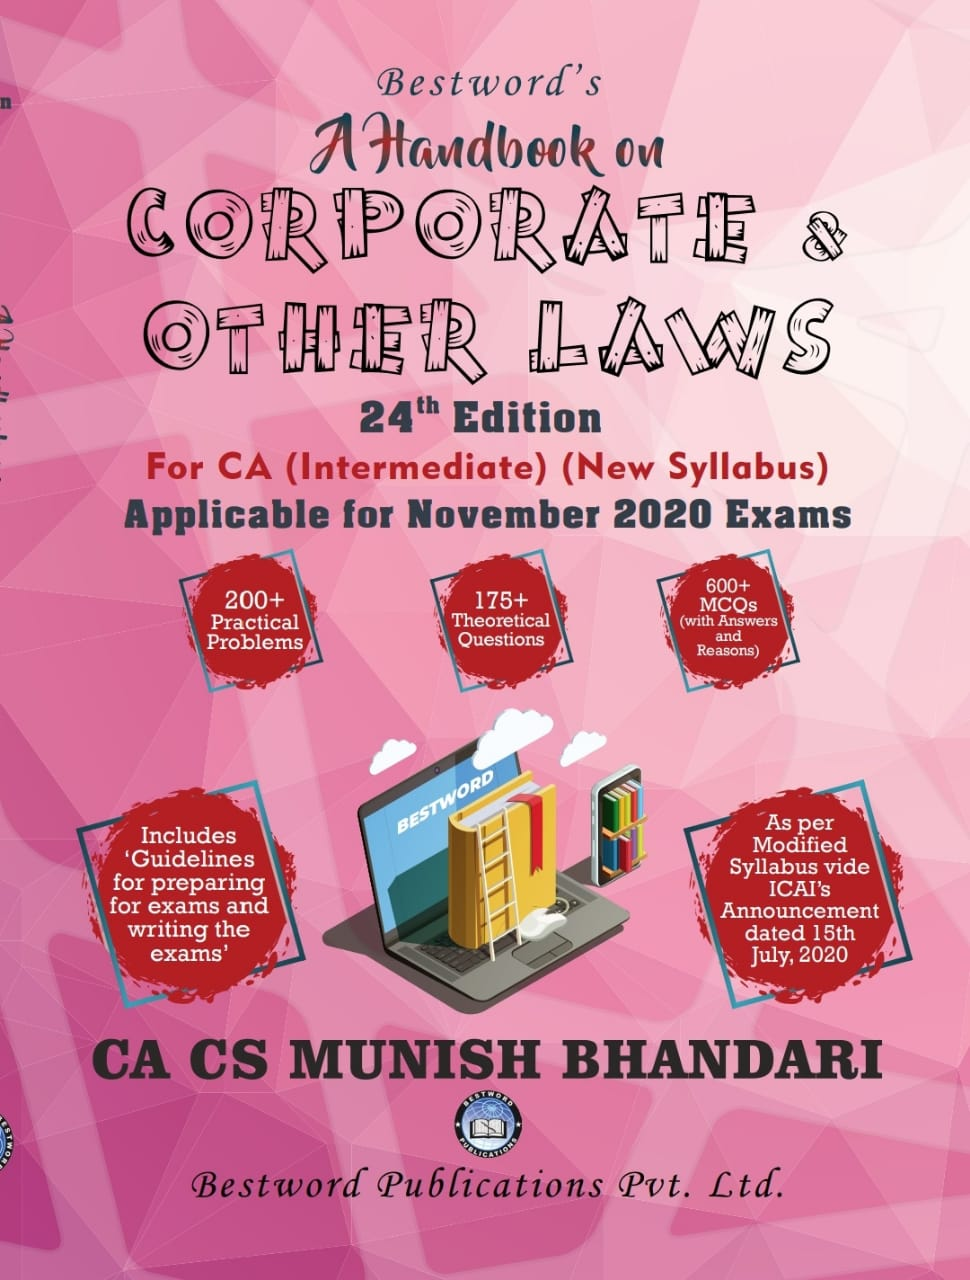 Bestword's A Handbook on Corporate and other Laws for CA Inter (IPCC) By Munish Bhandari Applicable for nov 2020